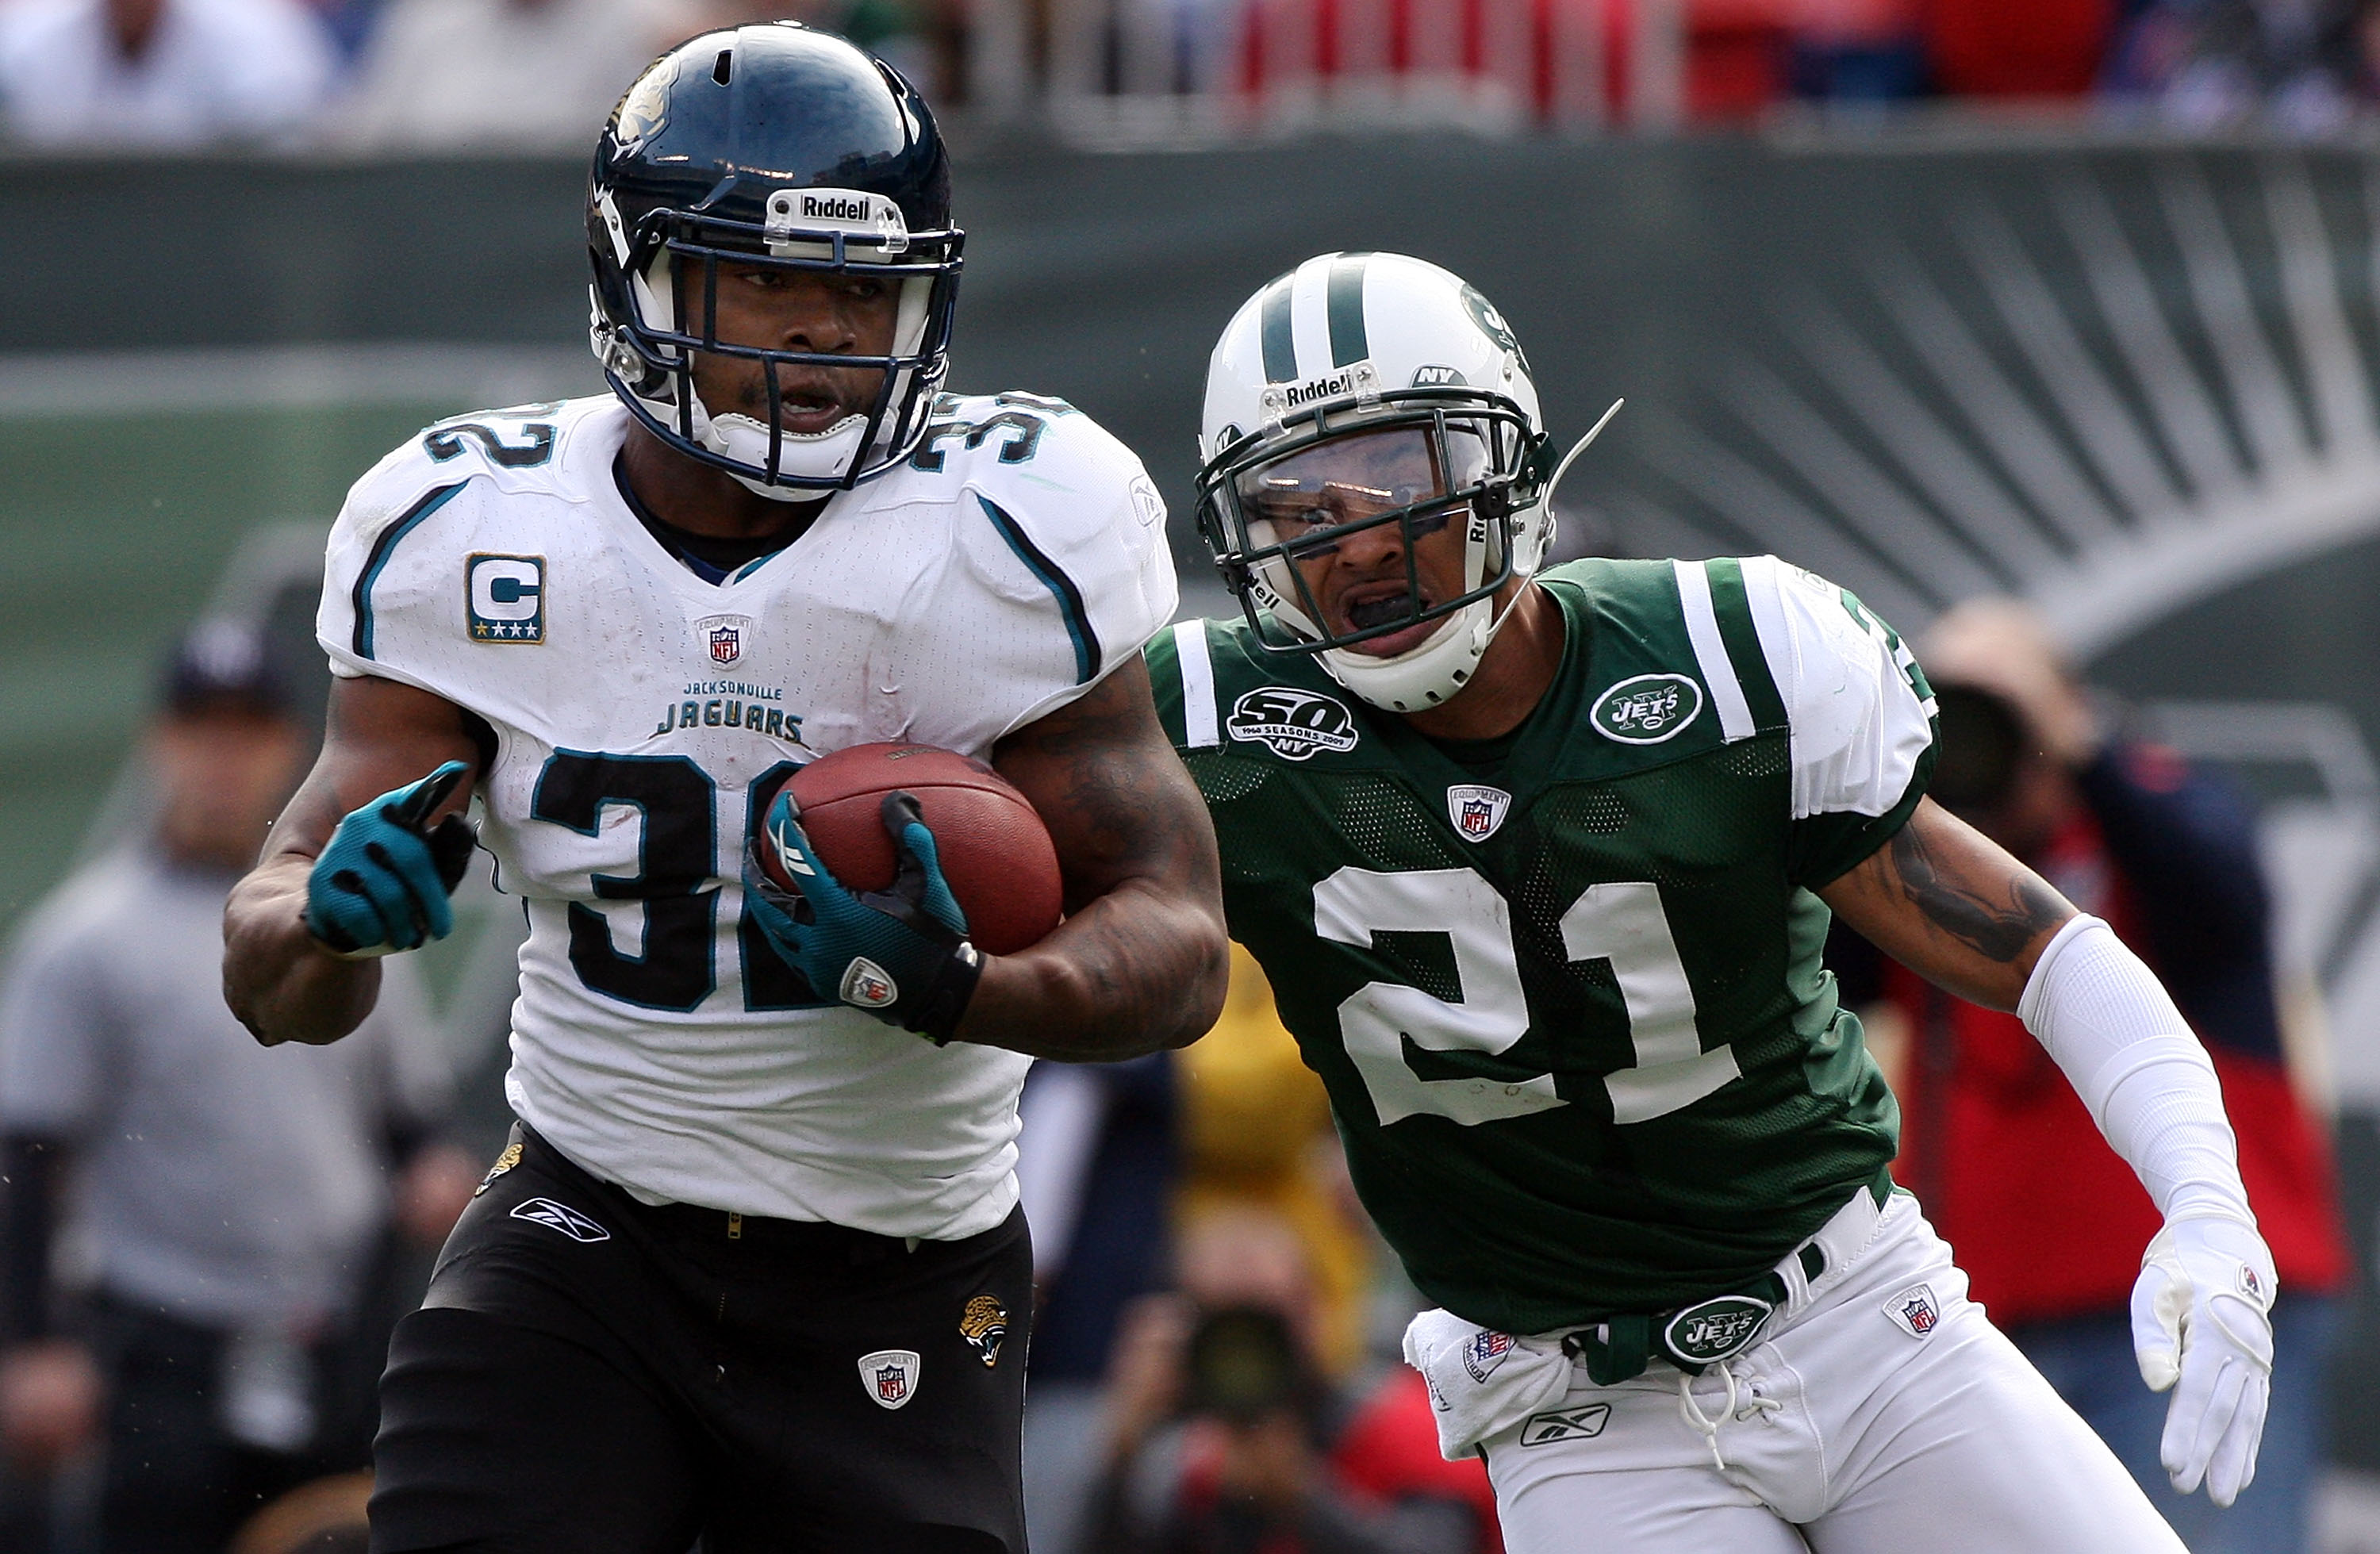 EAST RUTHERFORD, NJ - NOVEMBER 15:  Maurice Jones-Drew #32 of the Jacksonville Jaguars runs the ball past Dwight Lowery #21 of the New York Jets for a first quarter touchdown on November 15, 2009 at Giants Stadium in East Rutherford, New Jersey.  (Photo b